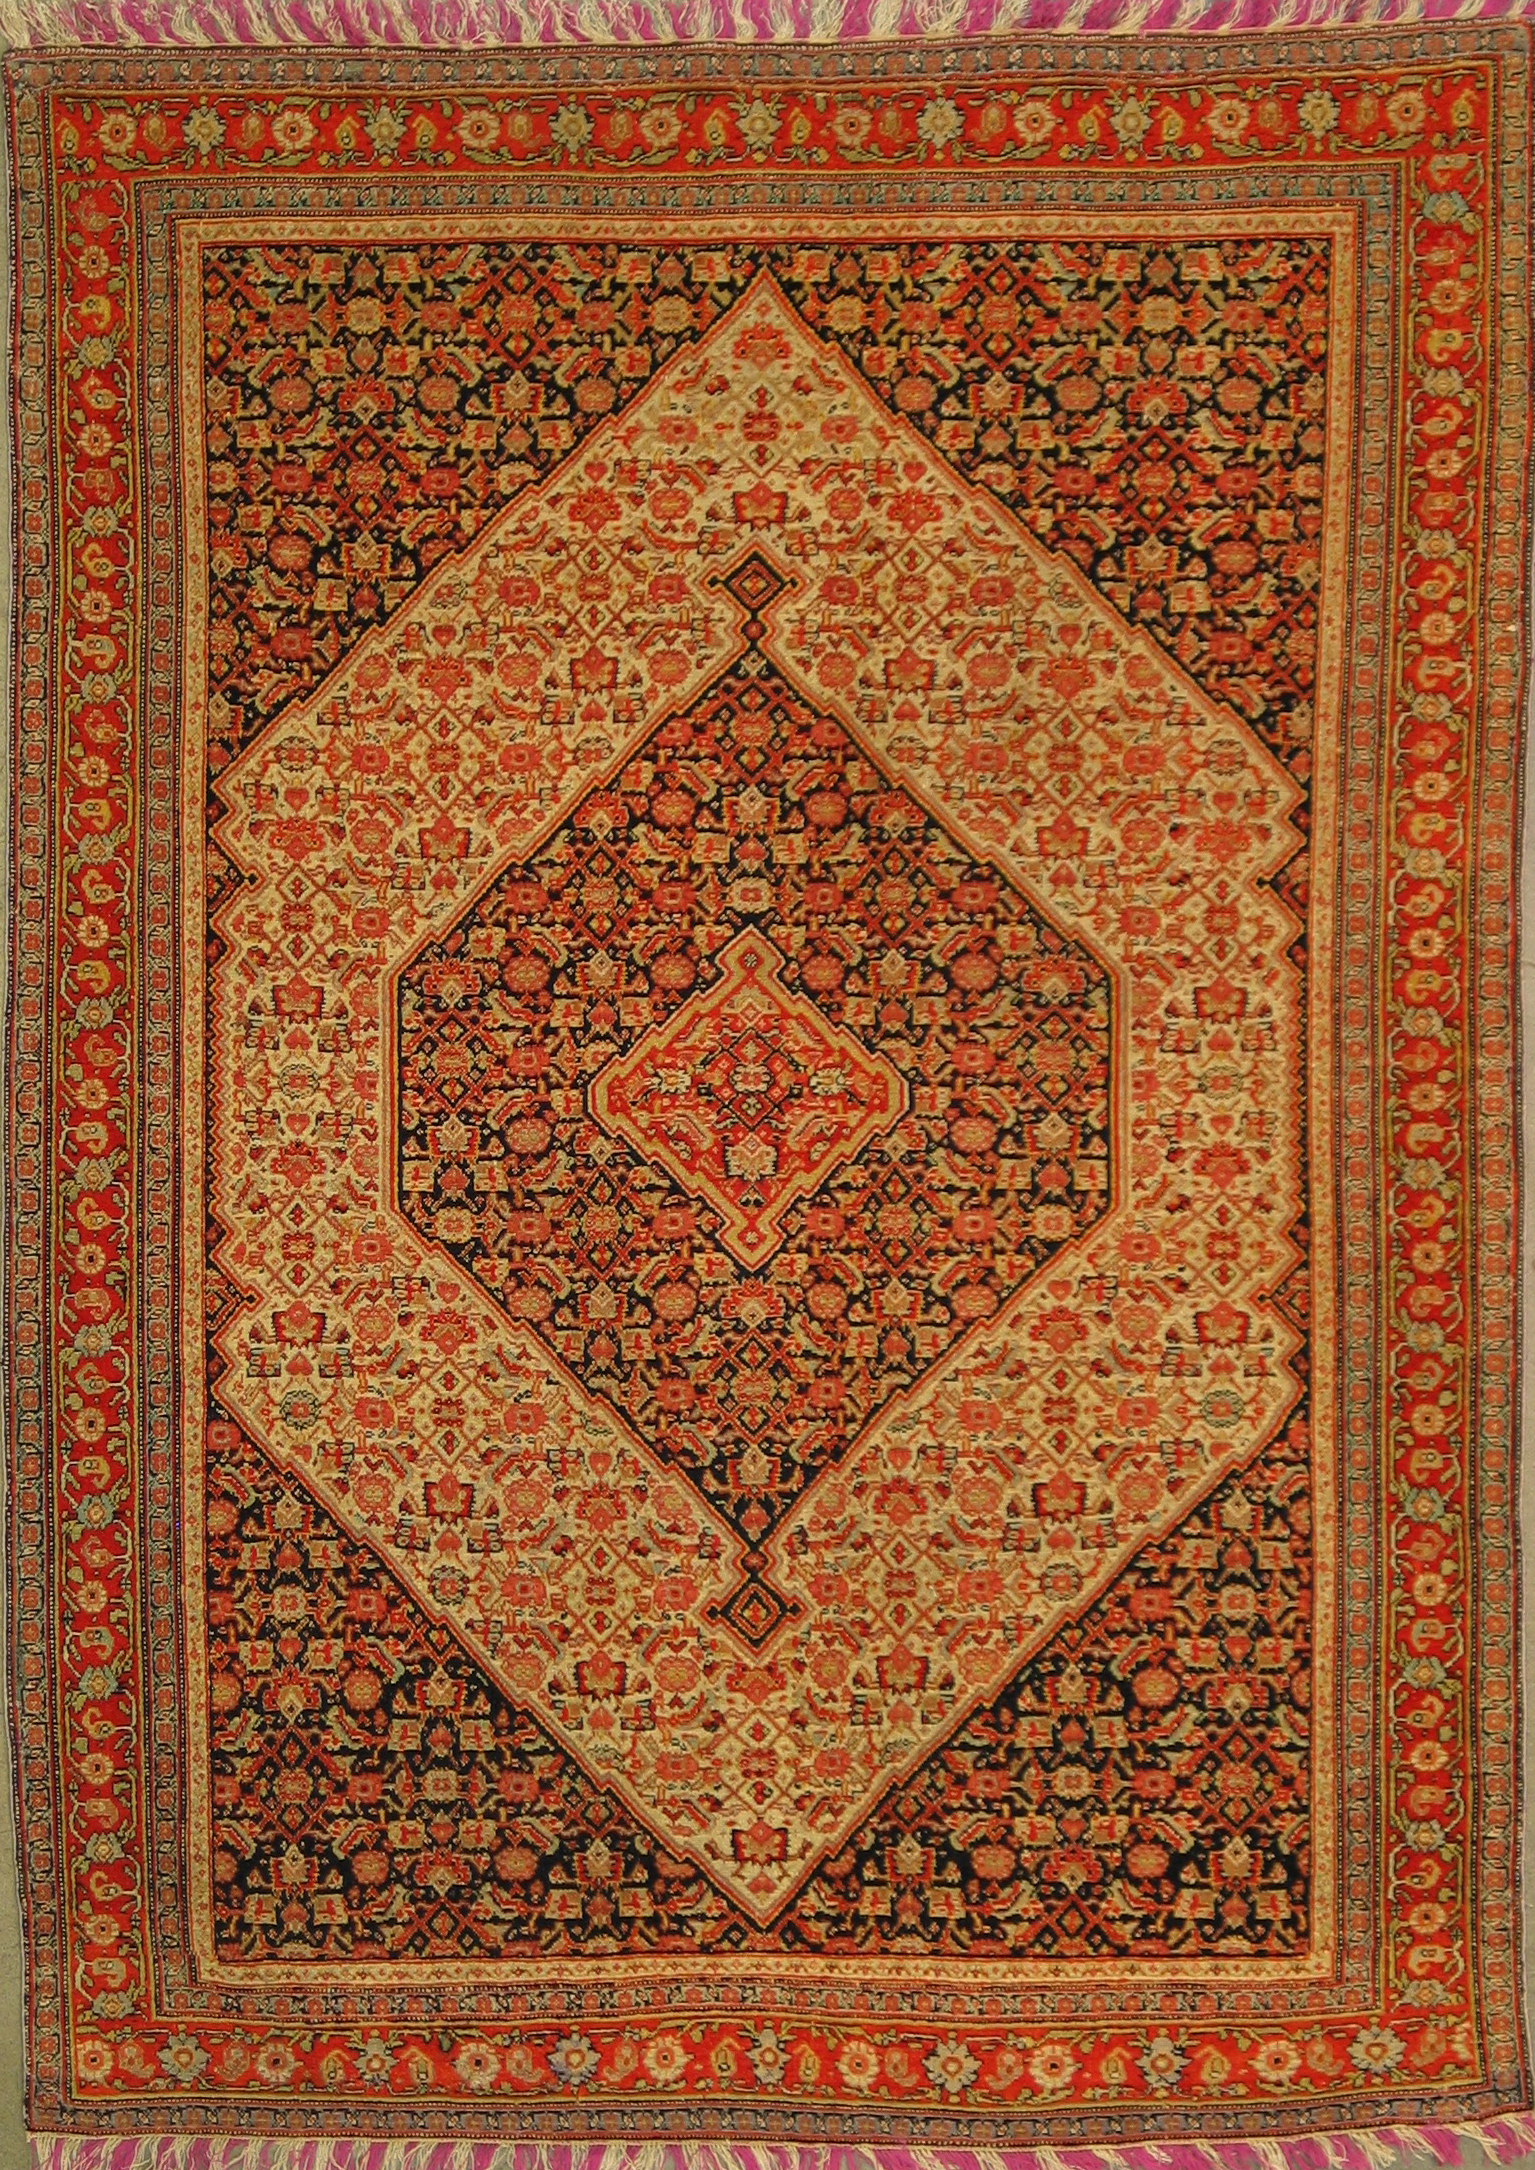 homa rugs, since 1986 - traditional and contemporary wool rugs Antique Rugs